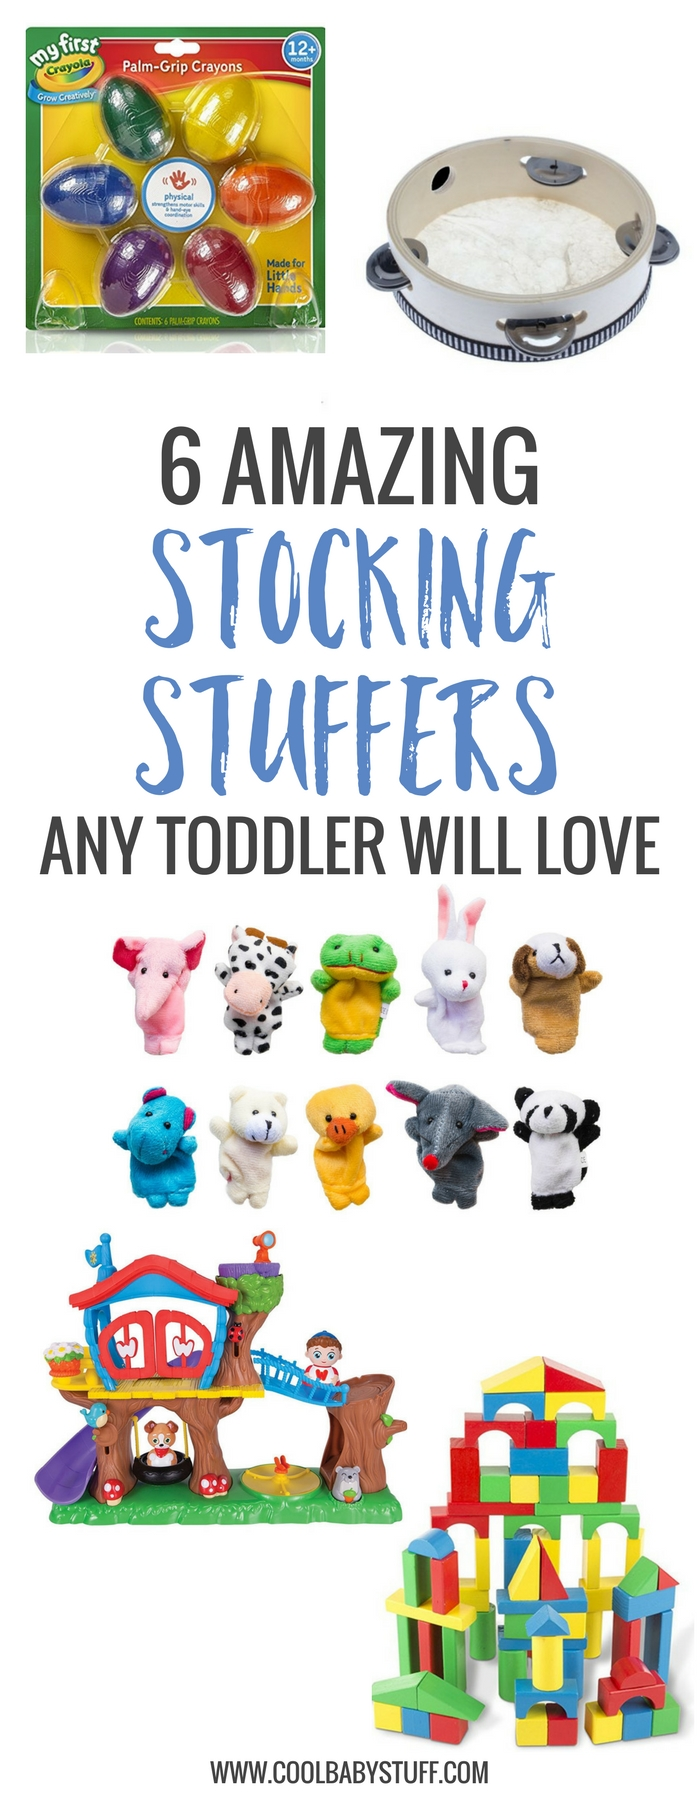 Toddlers have huge imaginations, and finding stocking stuffers for toddlers to match their imaginations isn't so daunting a task after all.